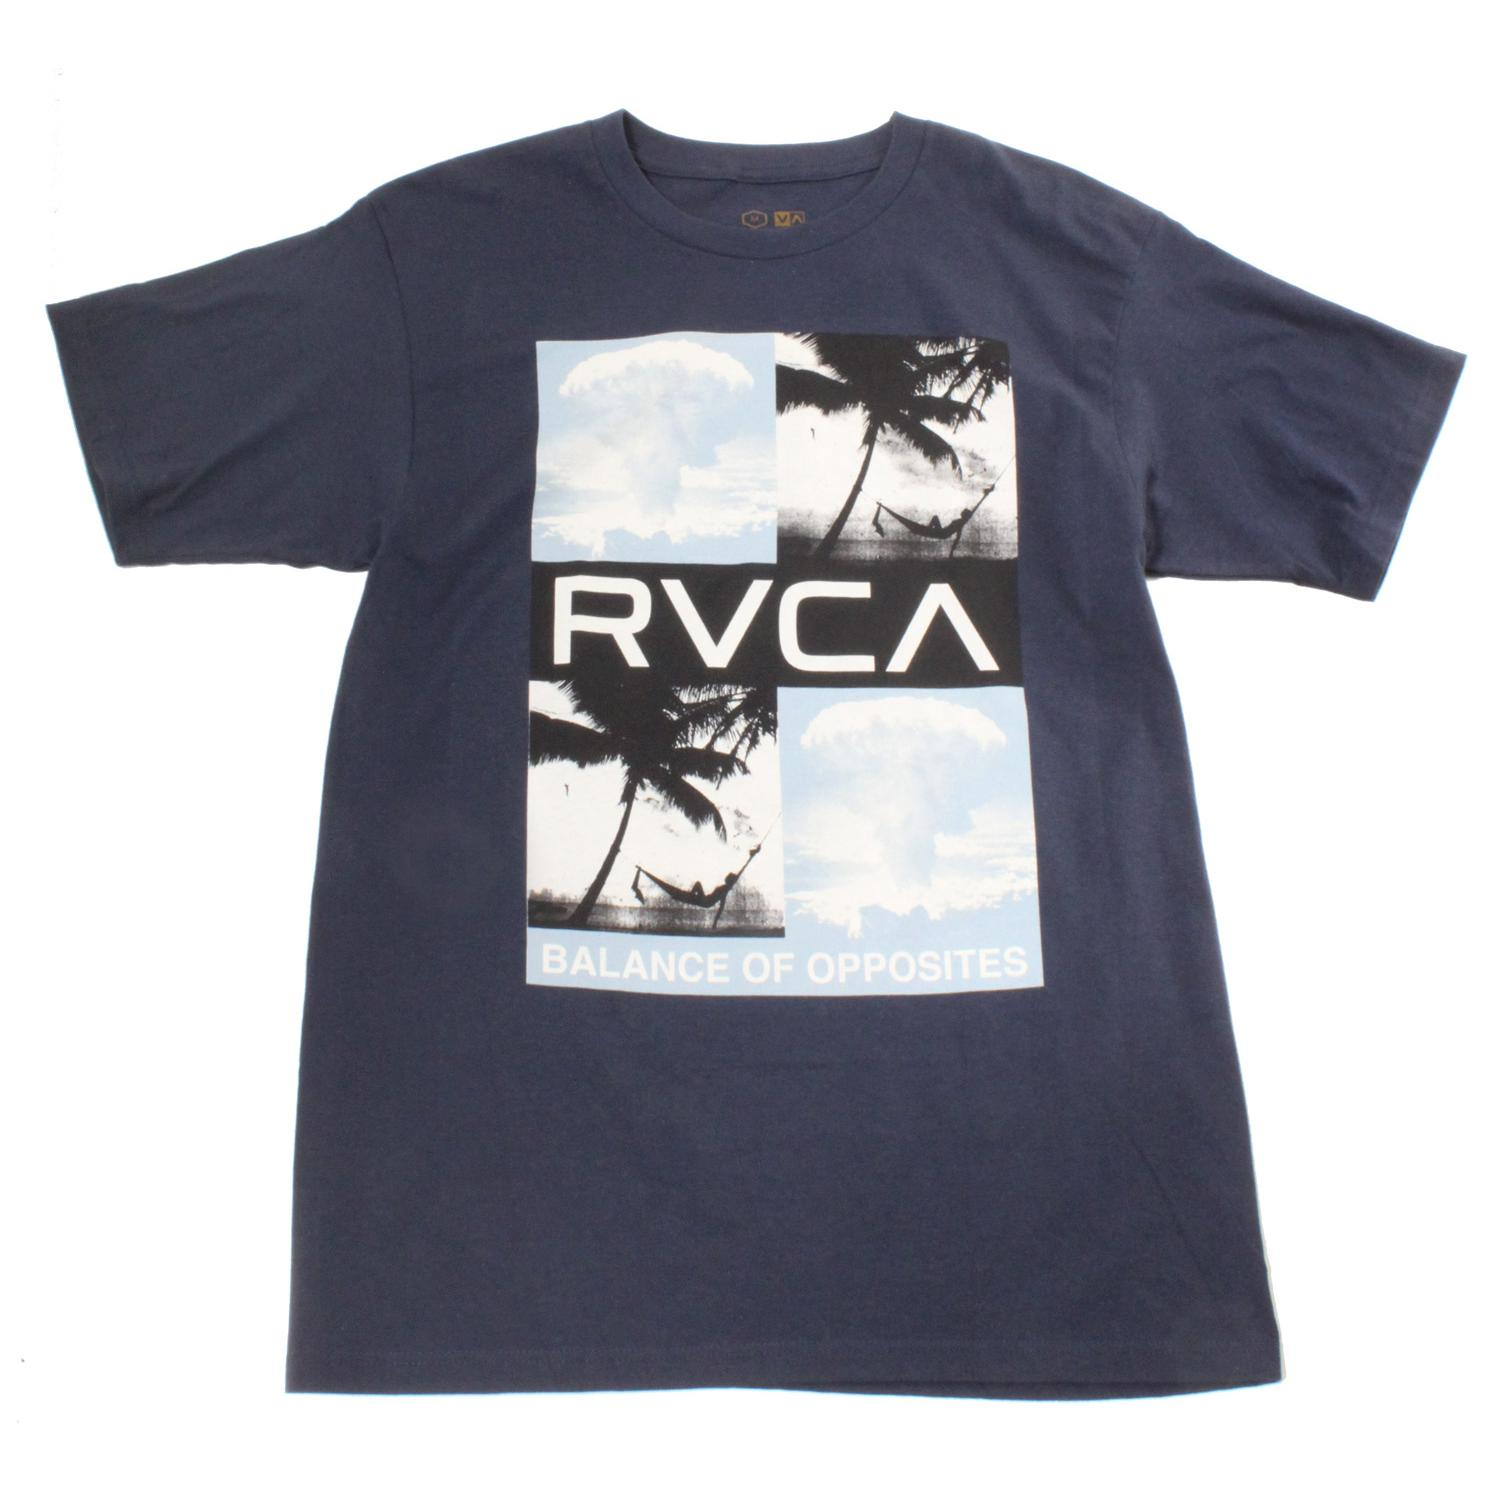 the gallery for gt rvca balance of opposites t shirt